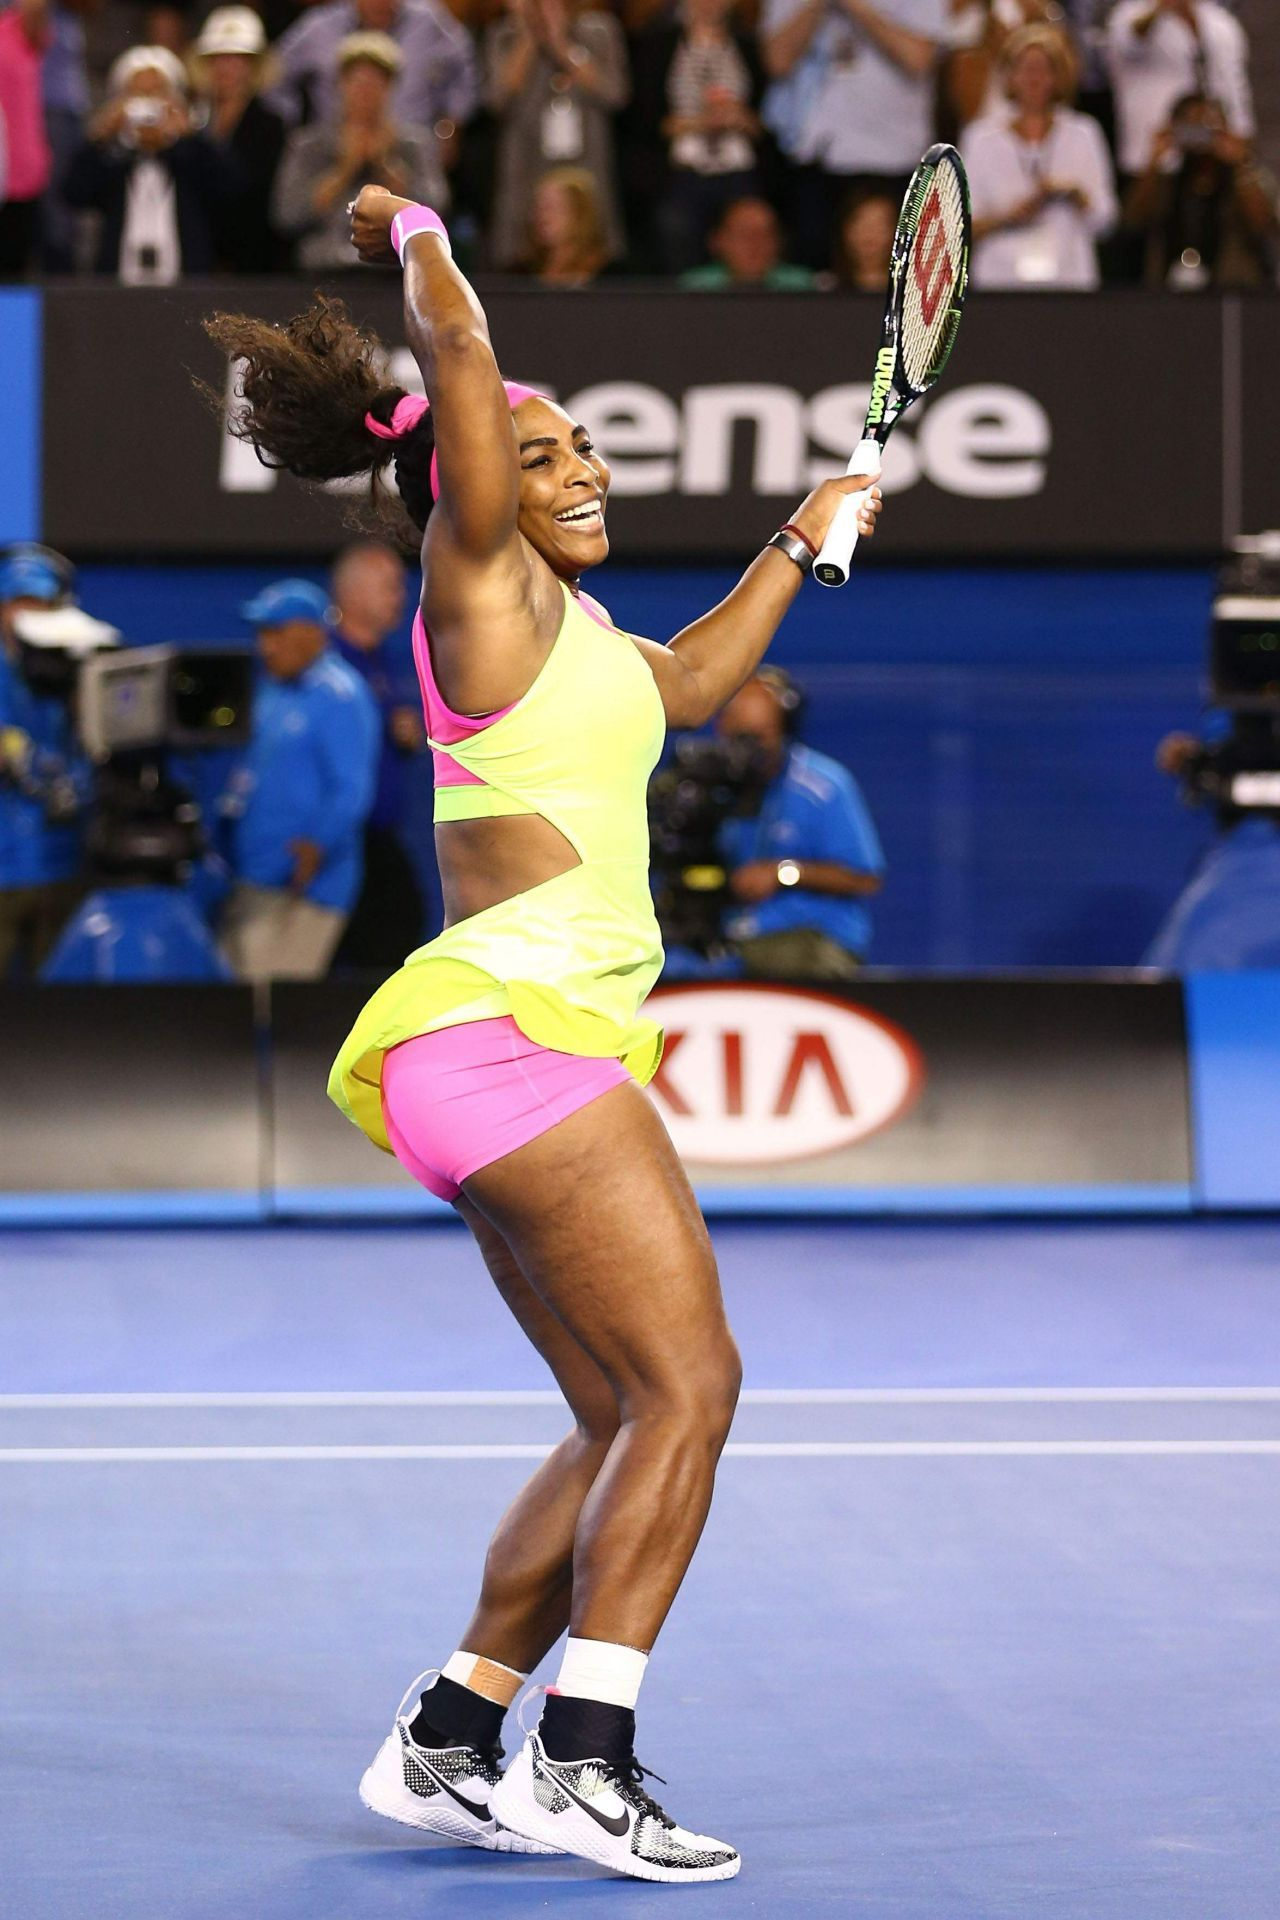 Williams - Australian Open 2015 Final